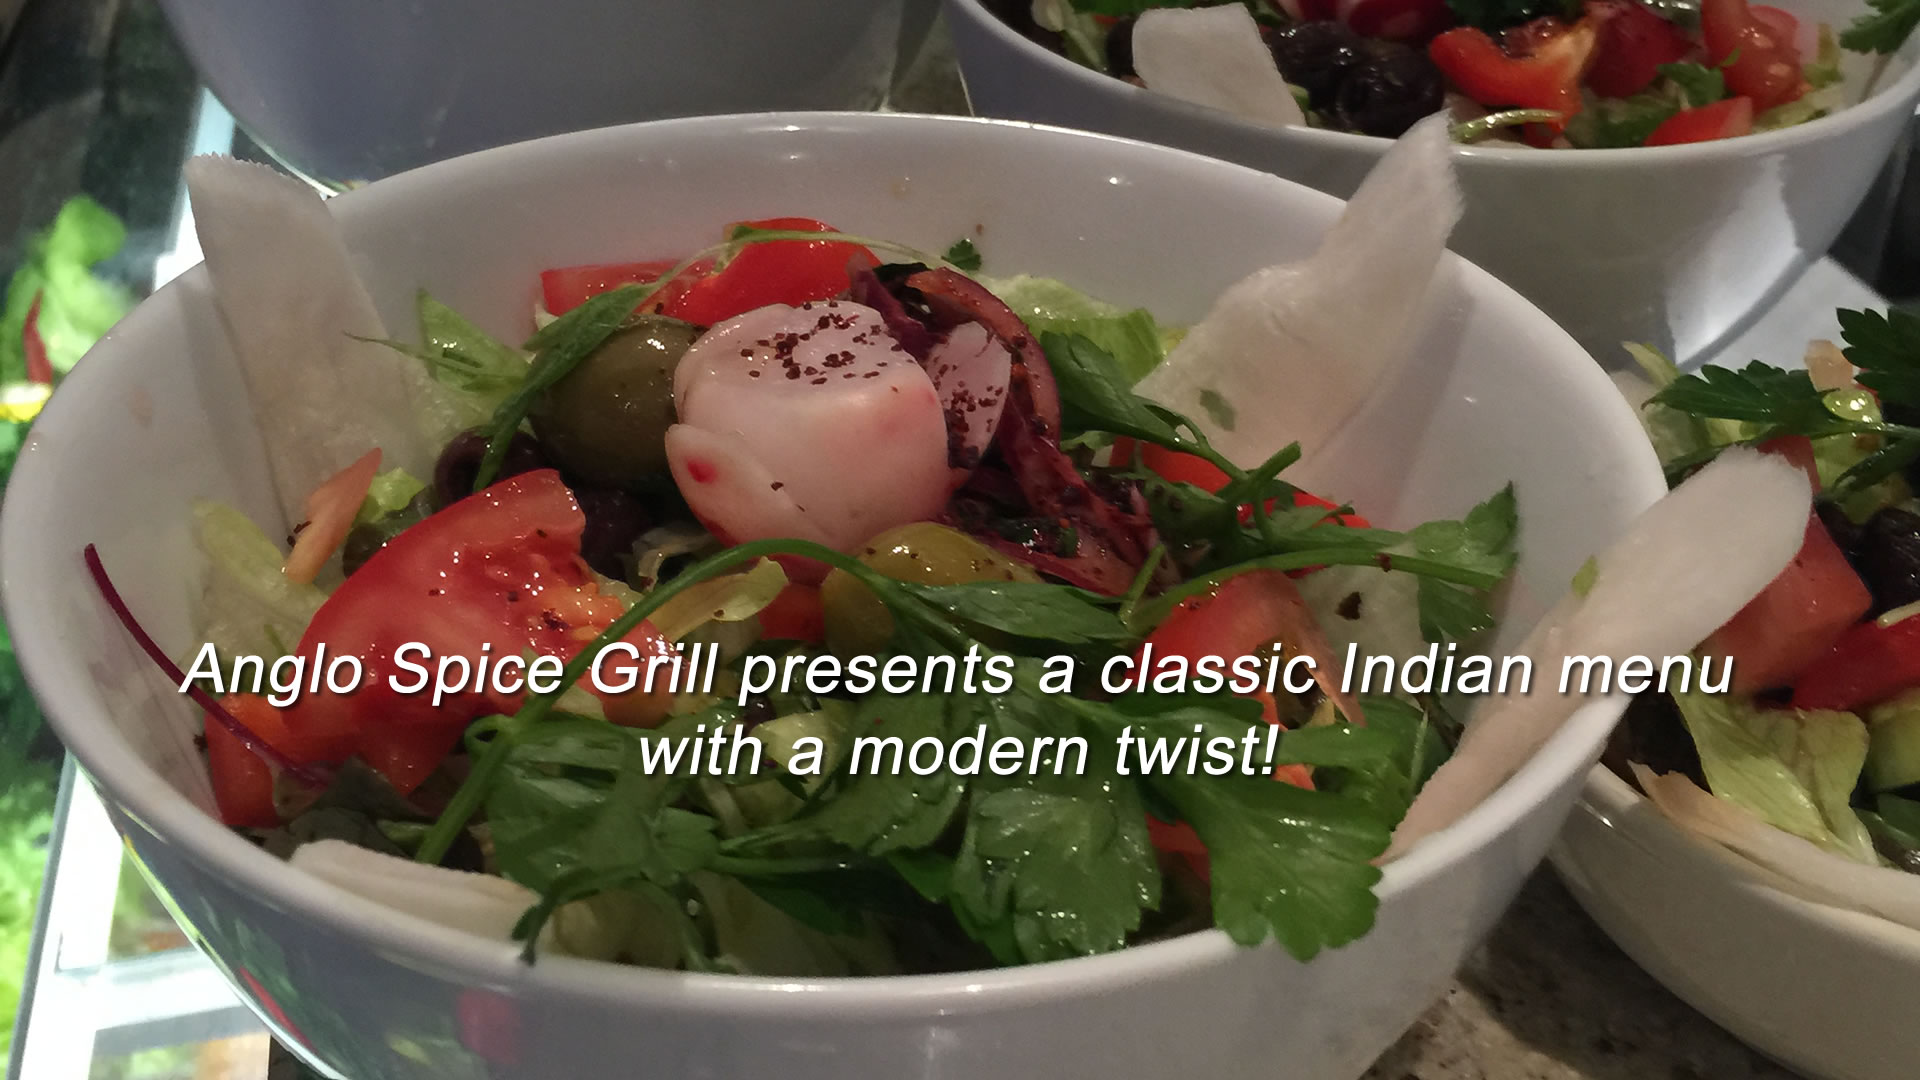 Anglo Spice Grill presents a modern Indian menu with a Turkish twist!